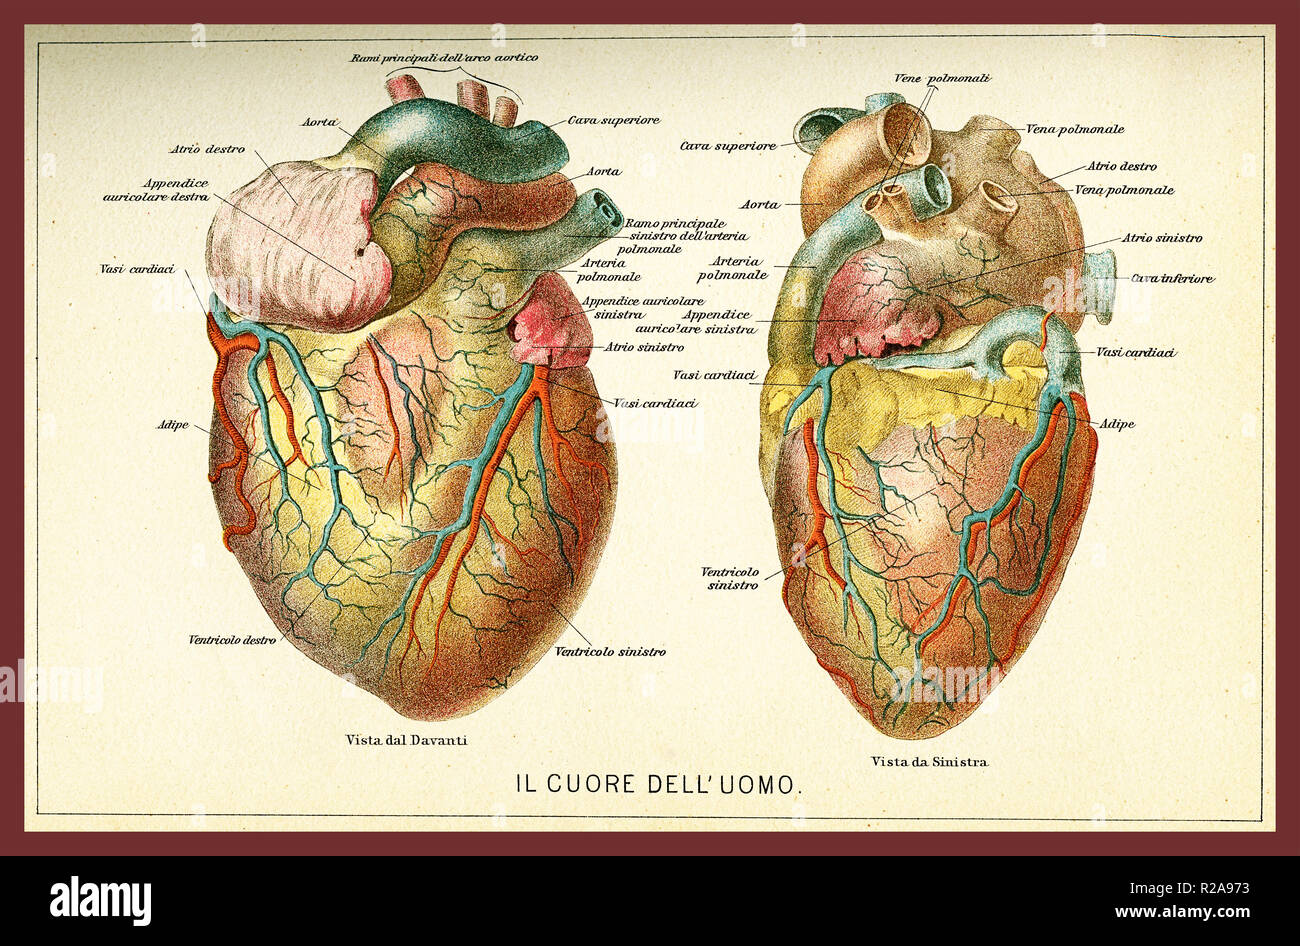 anatomical heart diagram minn kota riptide 80 wiring antique stock photos vintage color table of anatomy human with descriptions in italian image